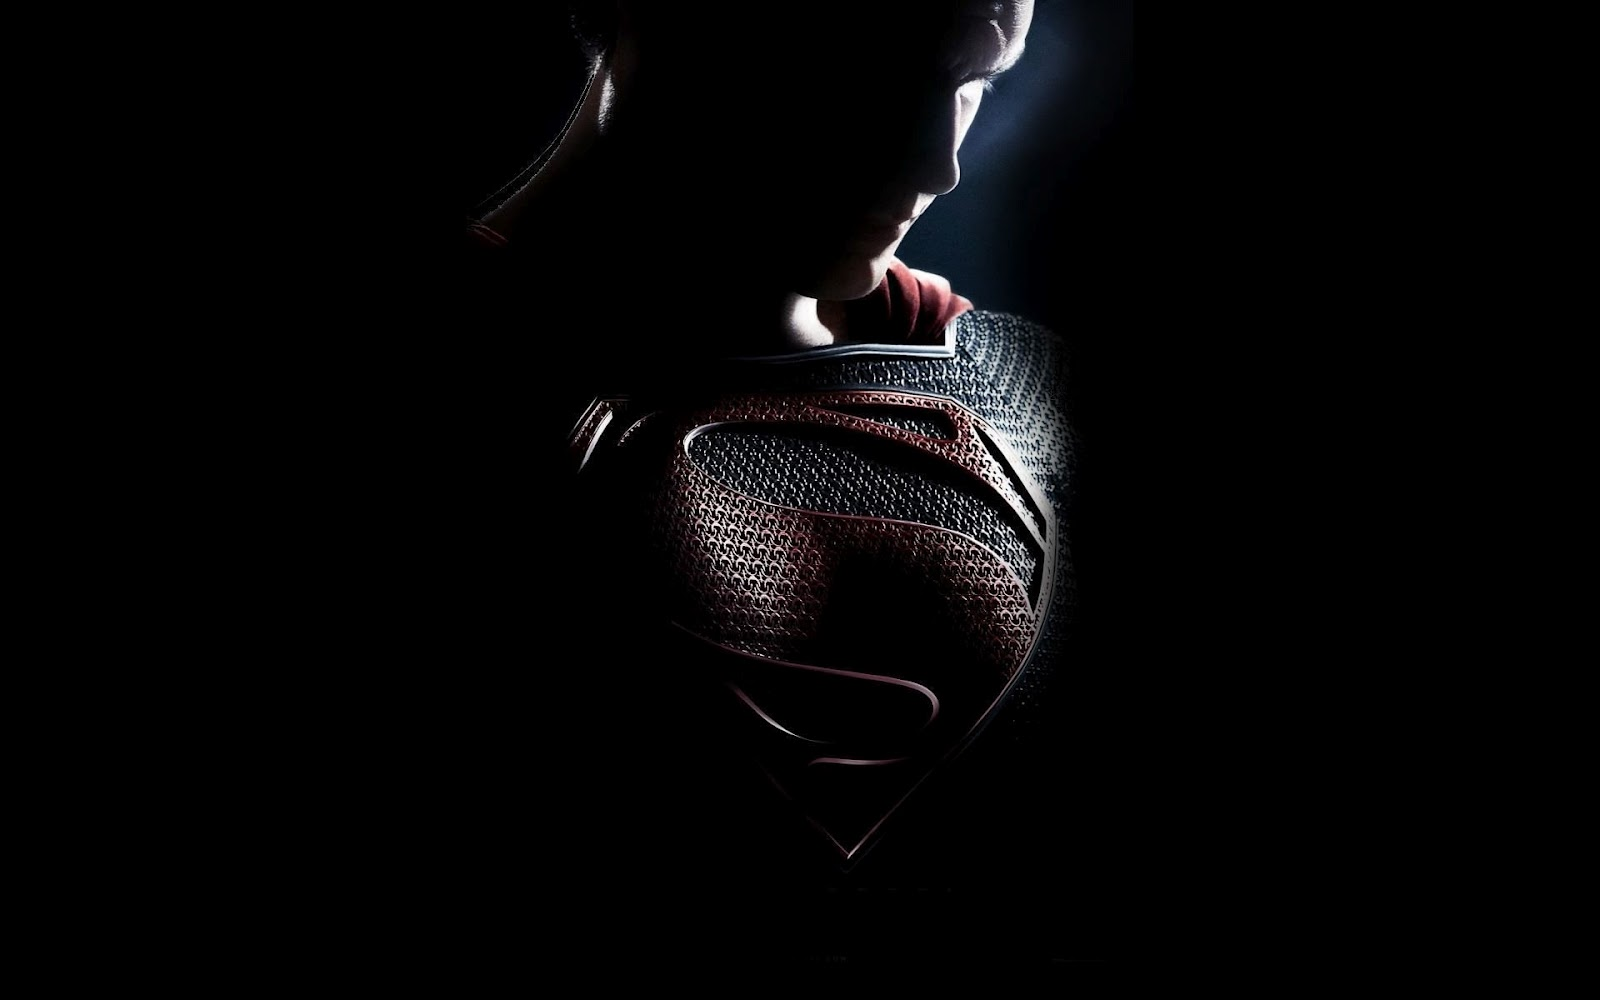 http://2.bp.blogspot.com/-sEpC1O2xUw0/UEOEqRF_lOI/AAAAAAAAIqI/pwa4W9O1nm8/s1600/superman-our-favorite-hero-1920x1200_2013_HD_wallpaper.jpg